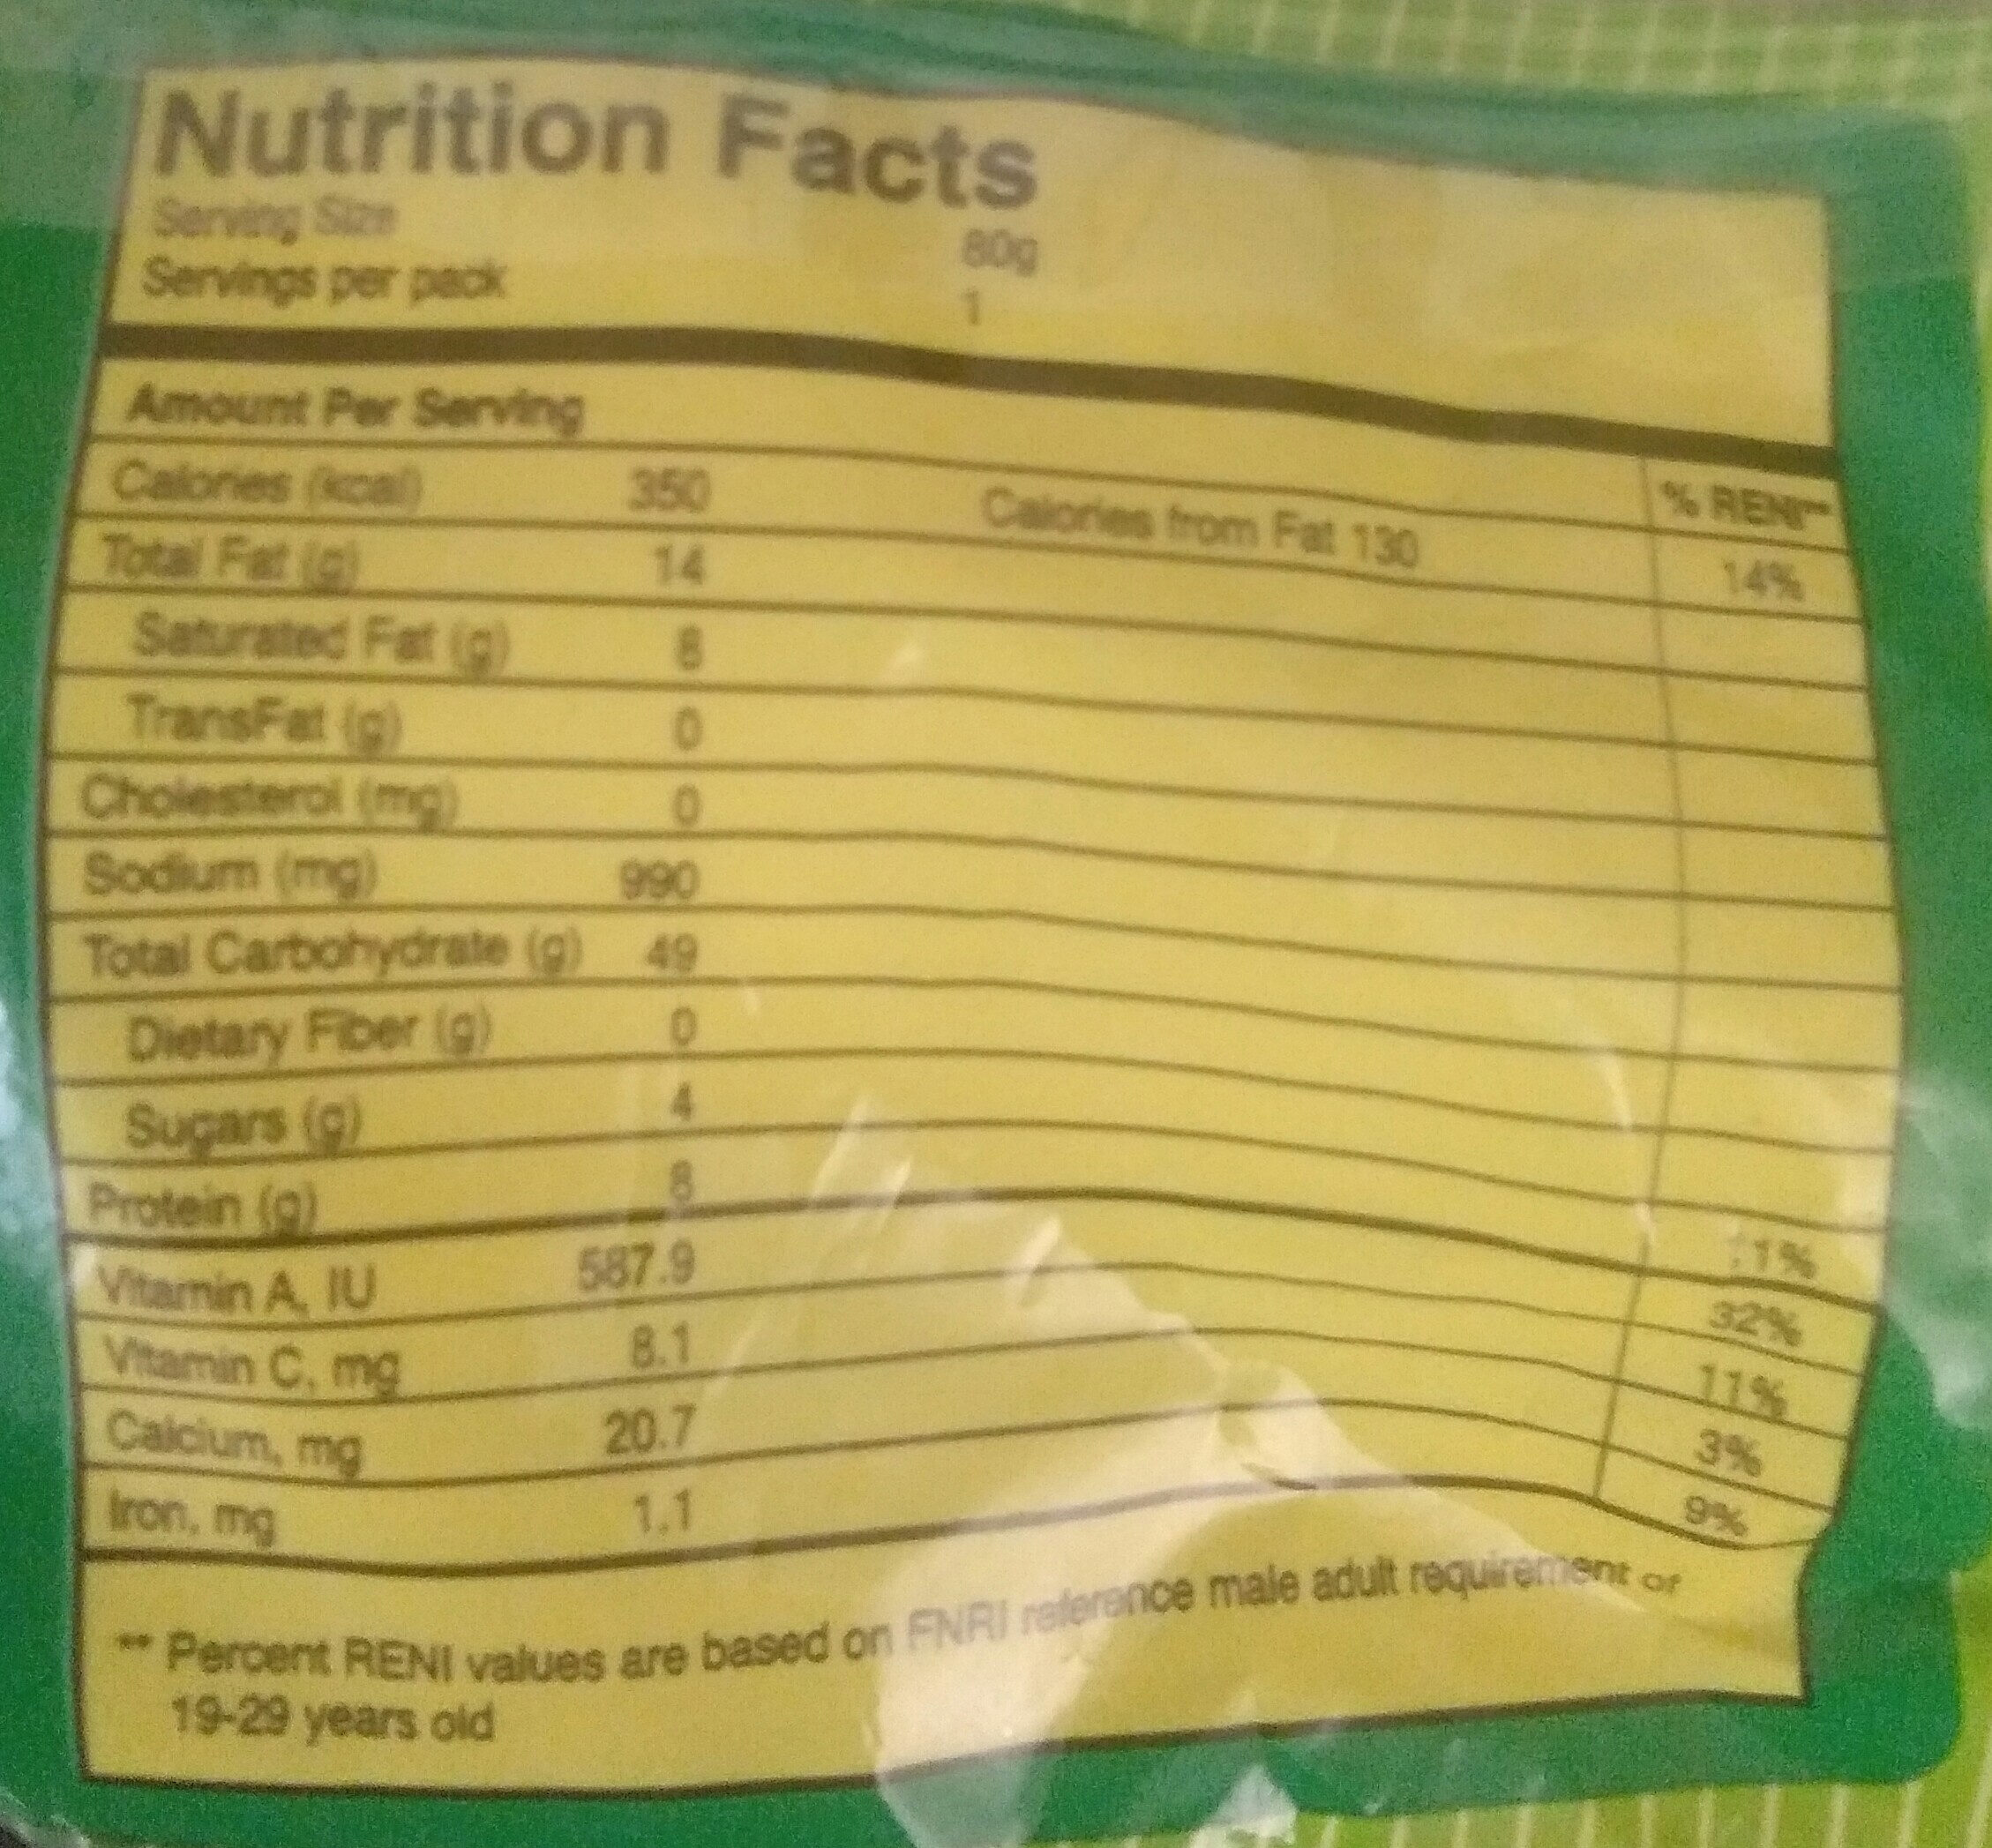 Lucky Me instant pancit canton chili-mansi - Nutrition facts